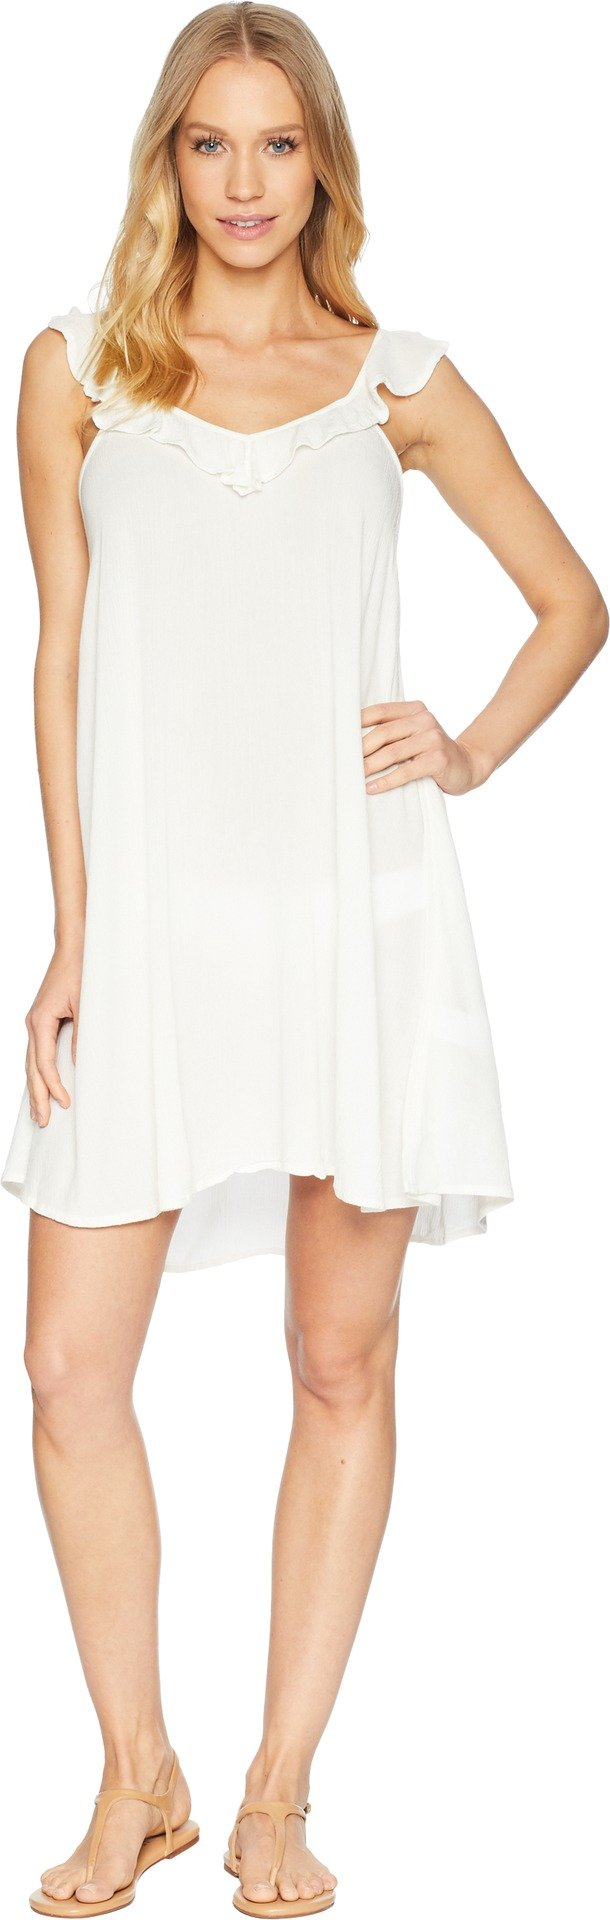 Roxy Junior's Dancing Around Coverup Dress, Marshmallow, S